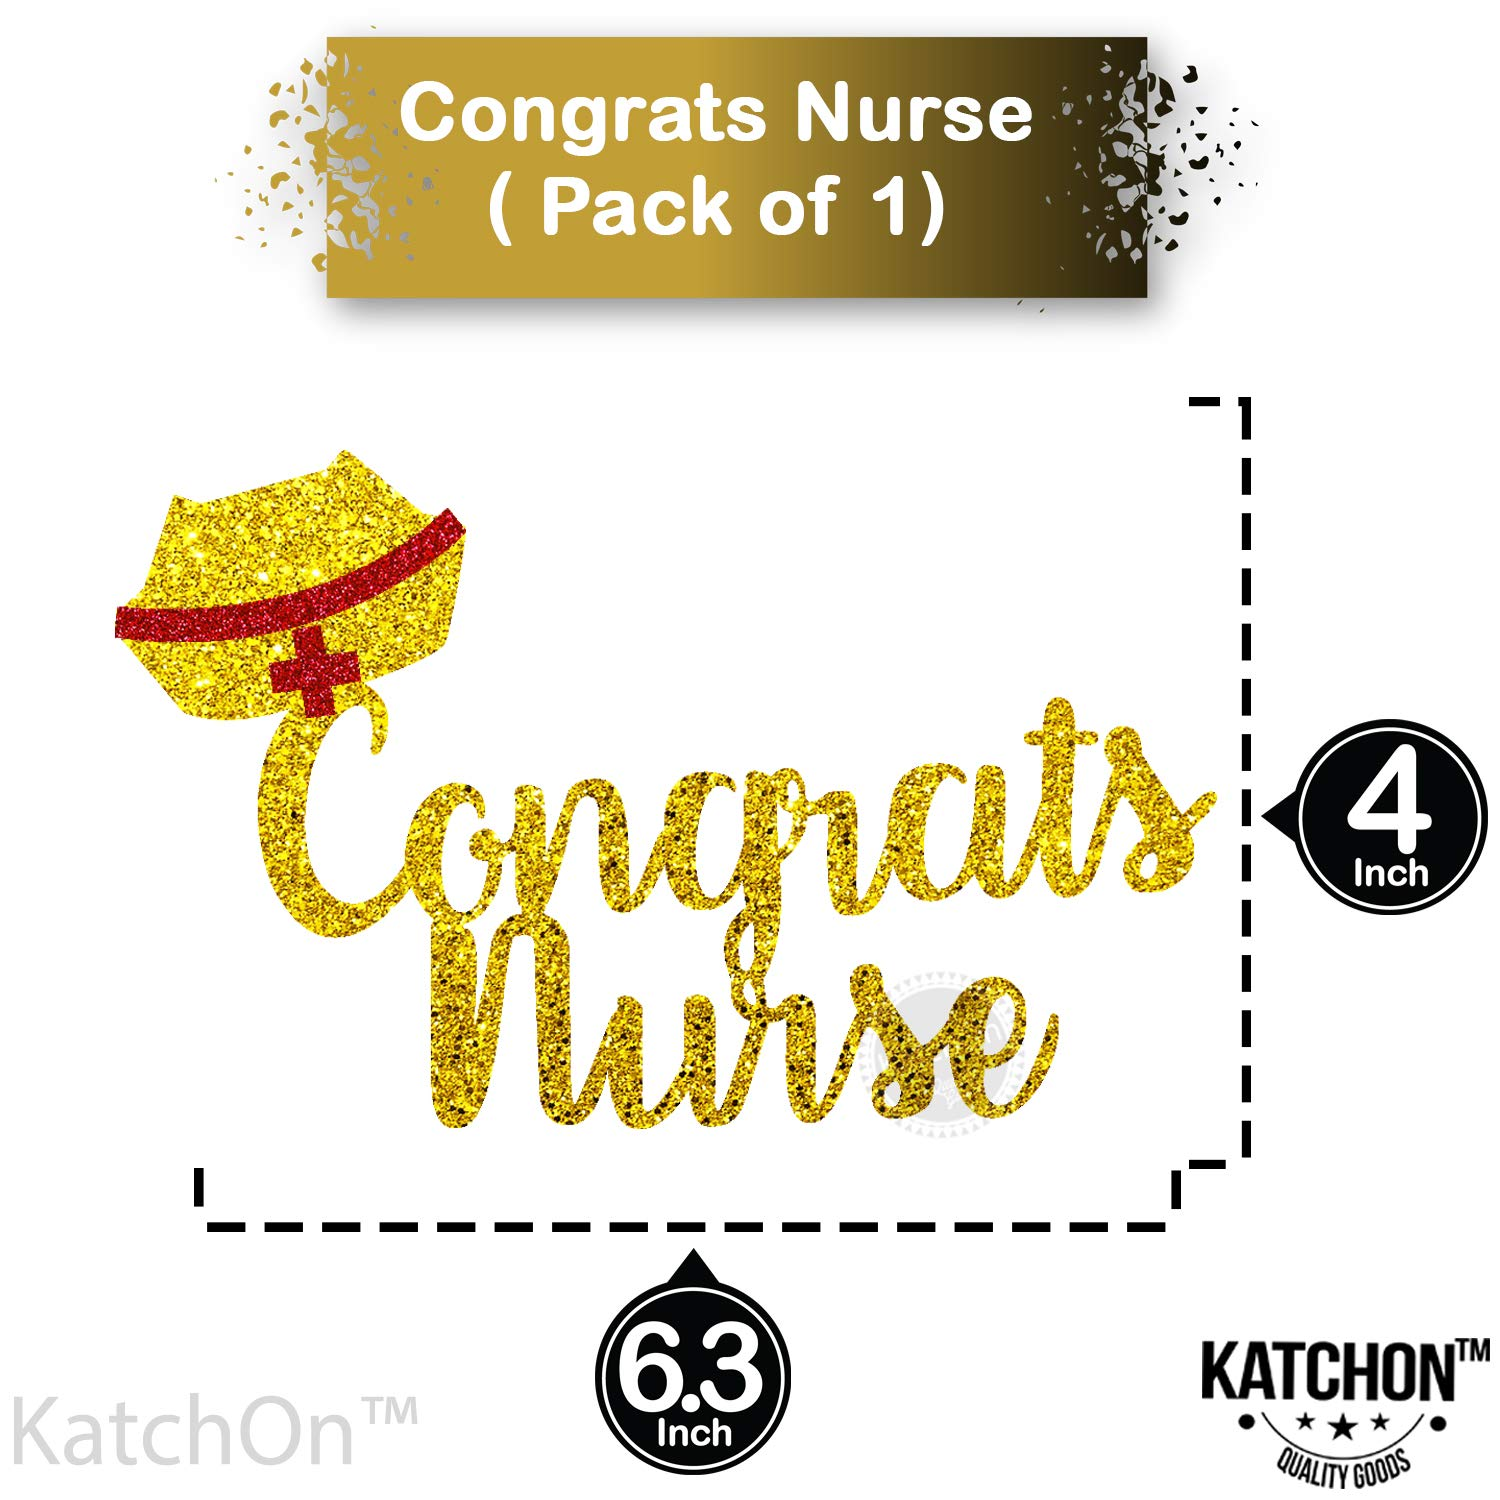 RN Nurse Party Decorations Real Glitter Nurse Graduation Party Decorations Gold and Red Large Size Nurse Theme Party Nursing Graduation Party Supplies 2019 Congrats Nurse Cake Topper